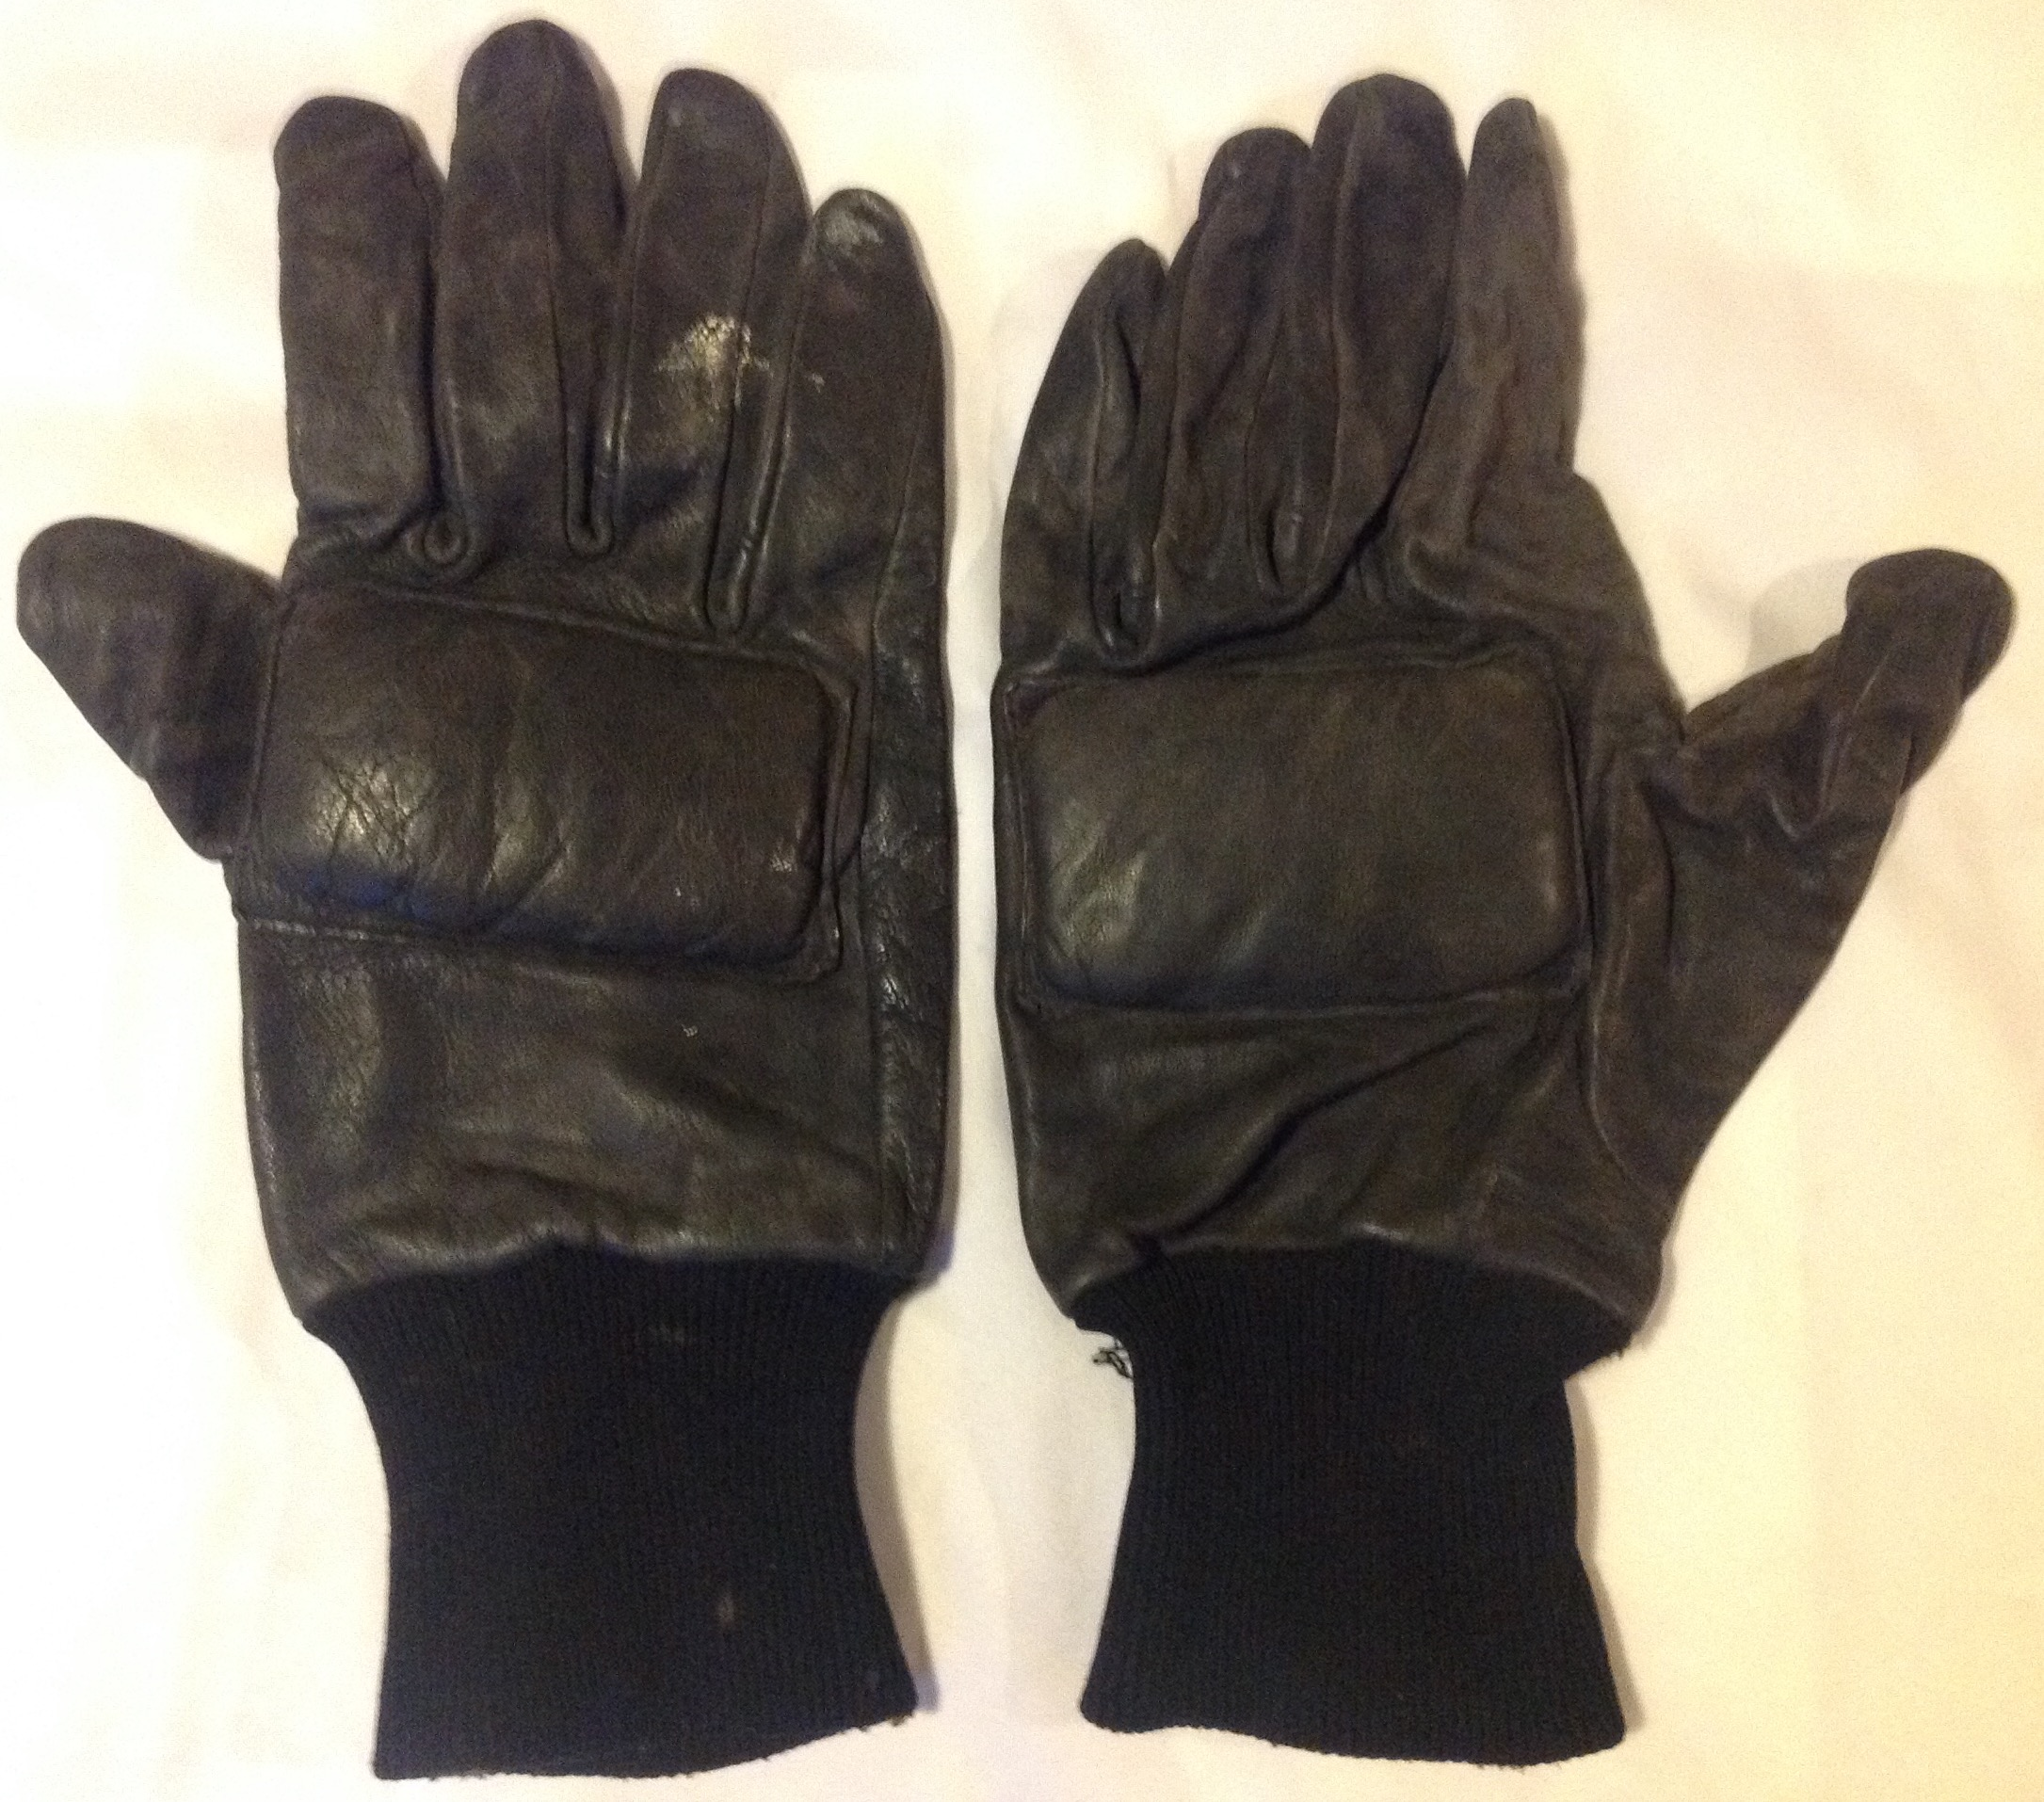 Black leather work gloves nsn - New Gloves Were Introduced Between 1974 76 And Were Designed For Use In An Urban Environment Being Made Of Black Leather Image